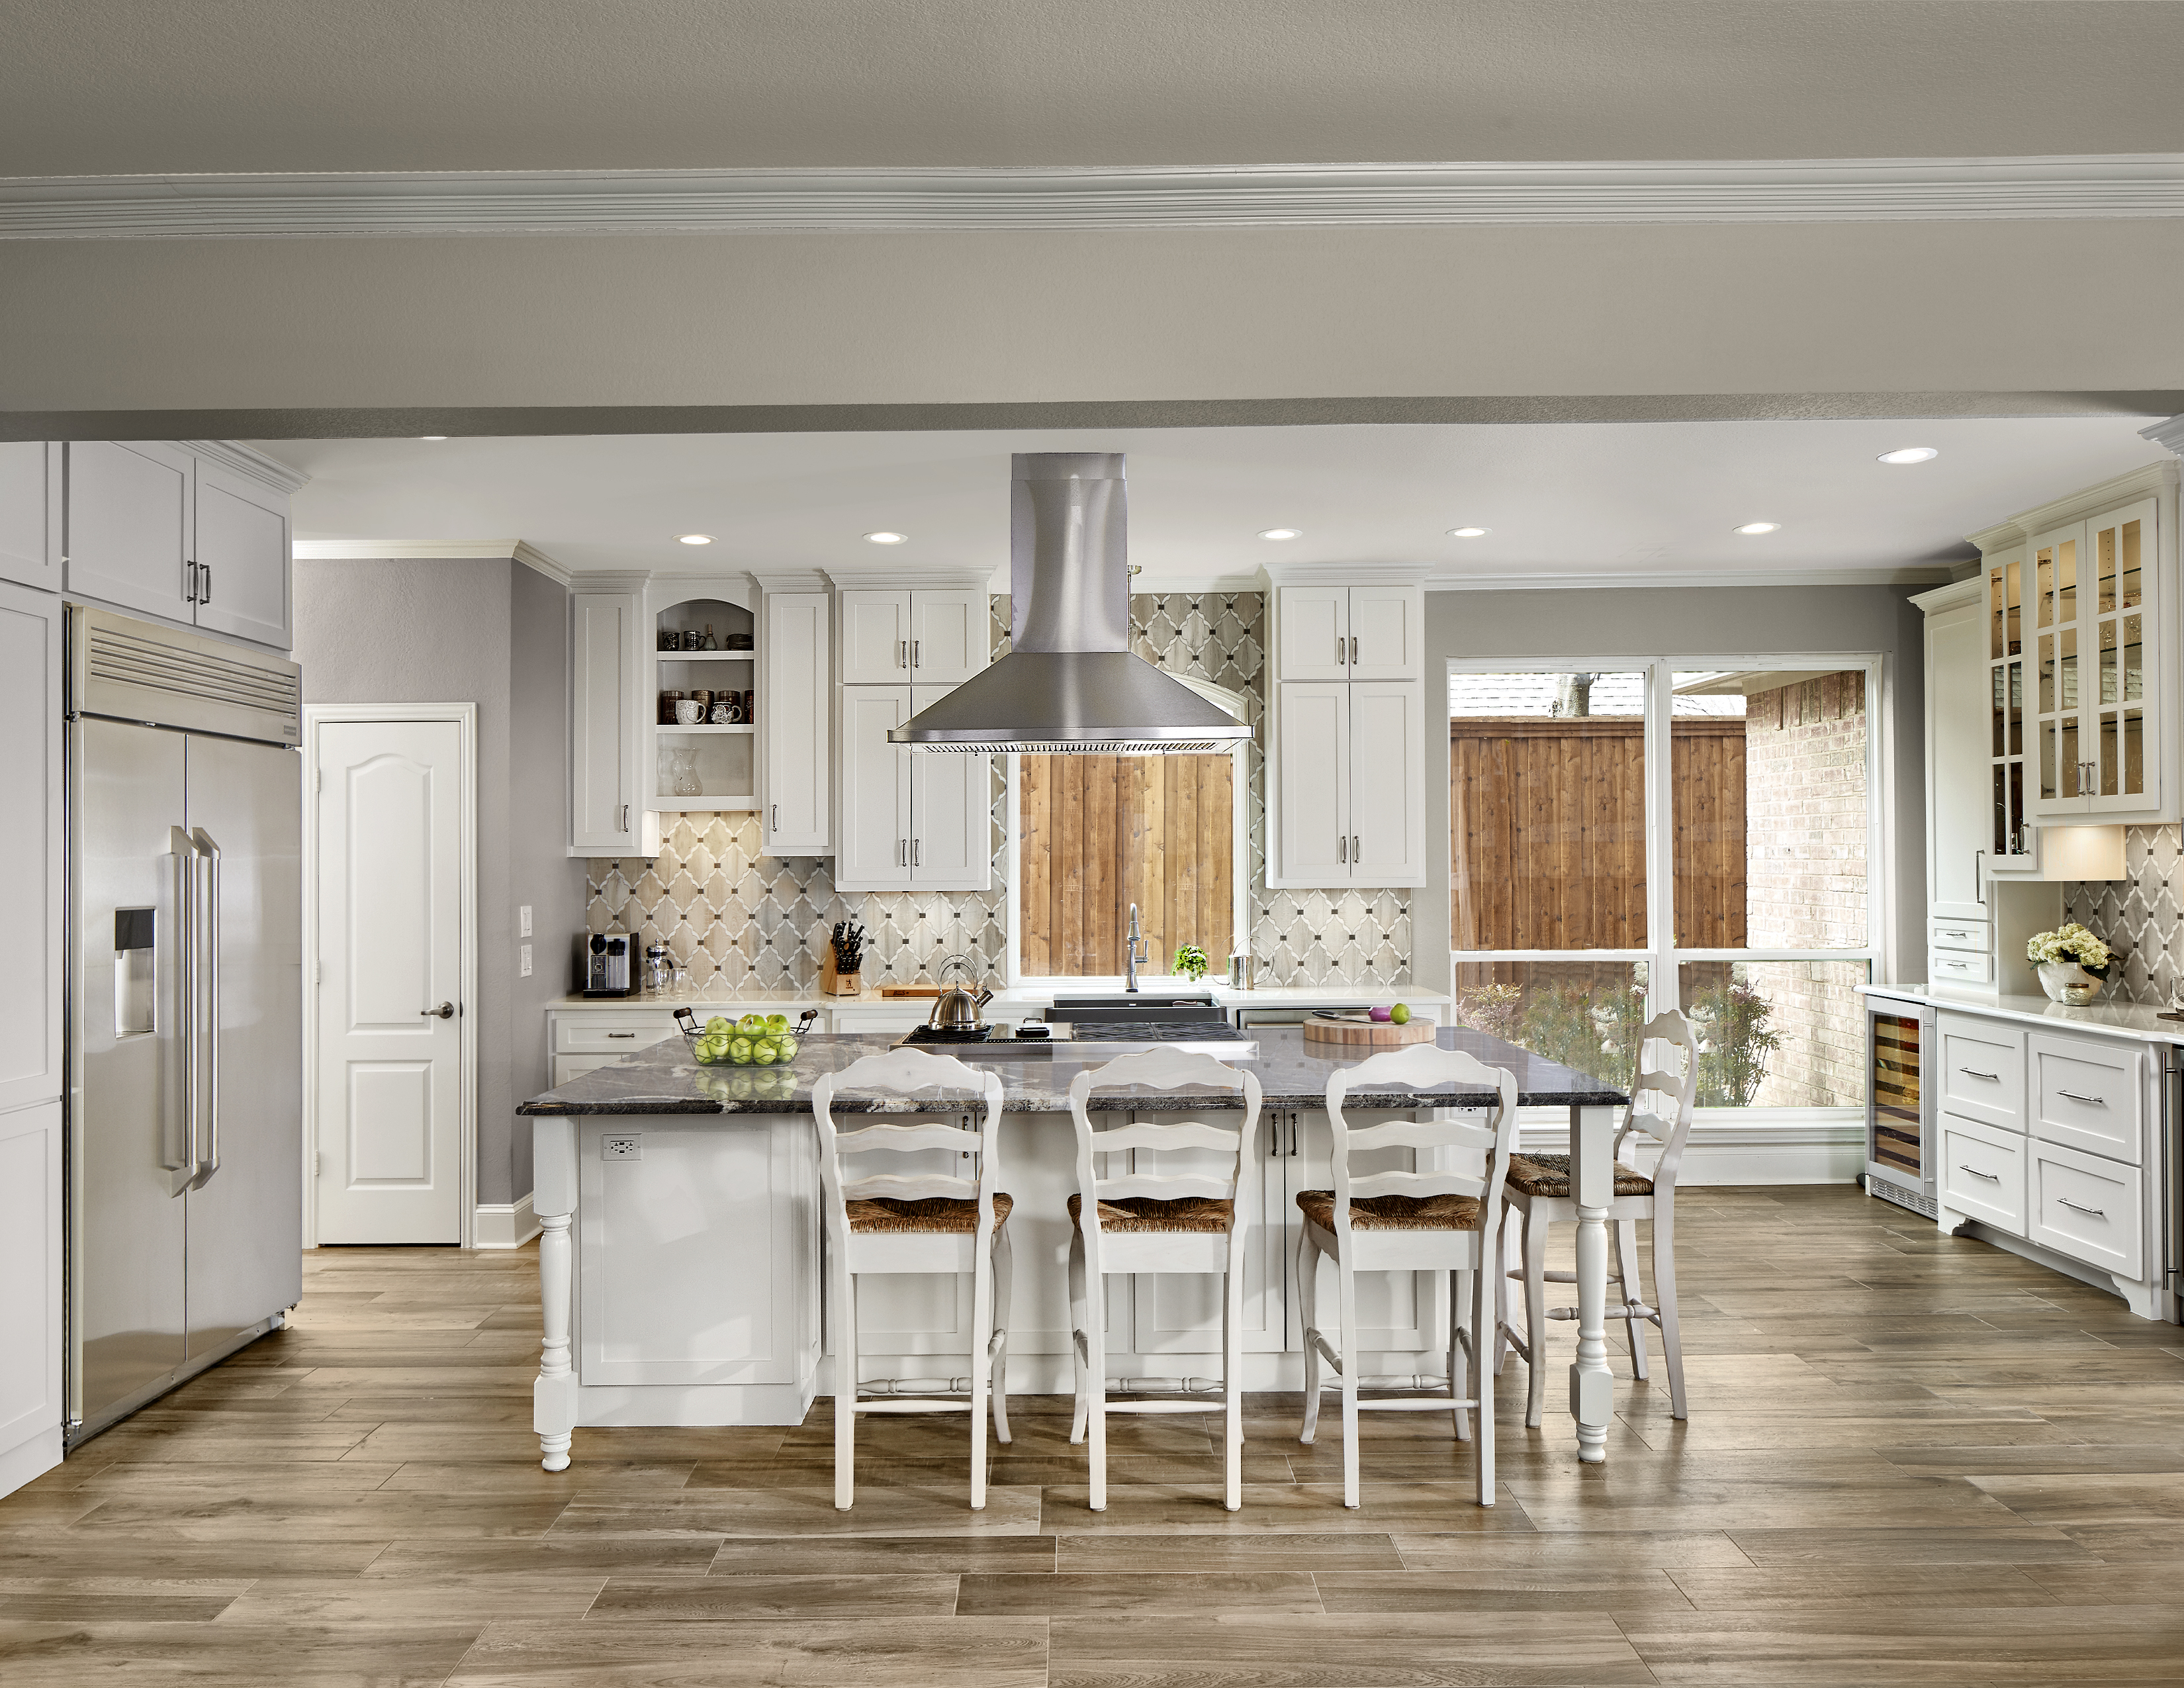 Remodeling - Make the Change Differently